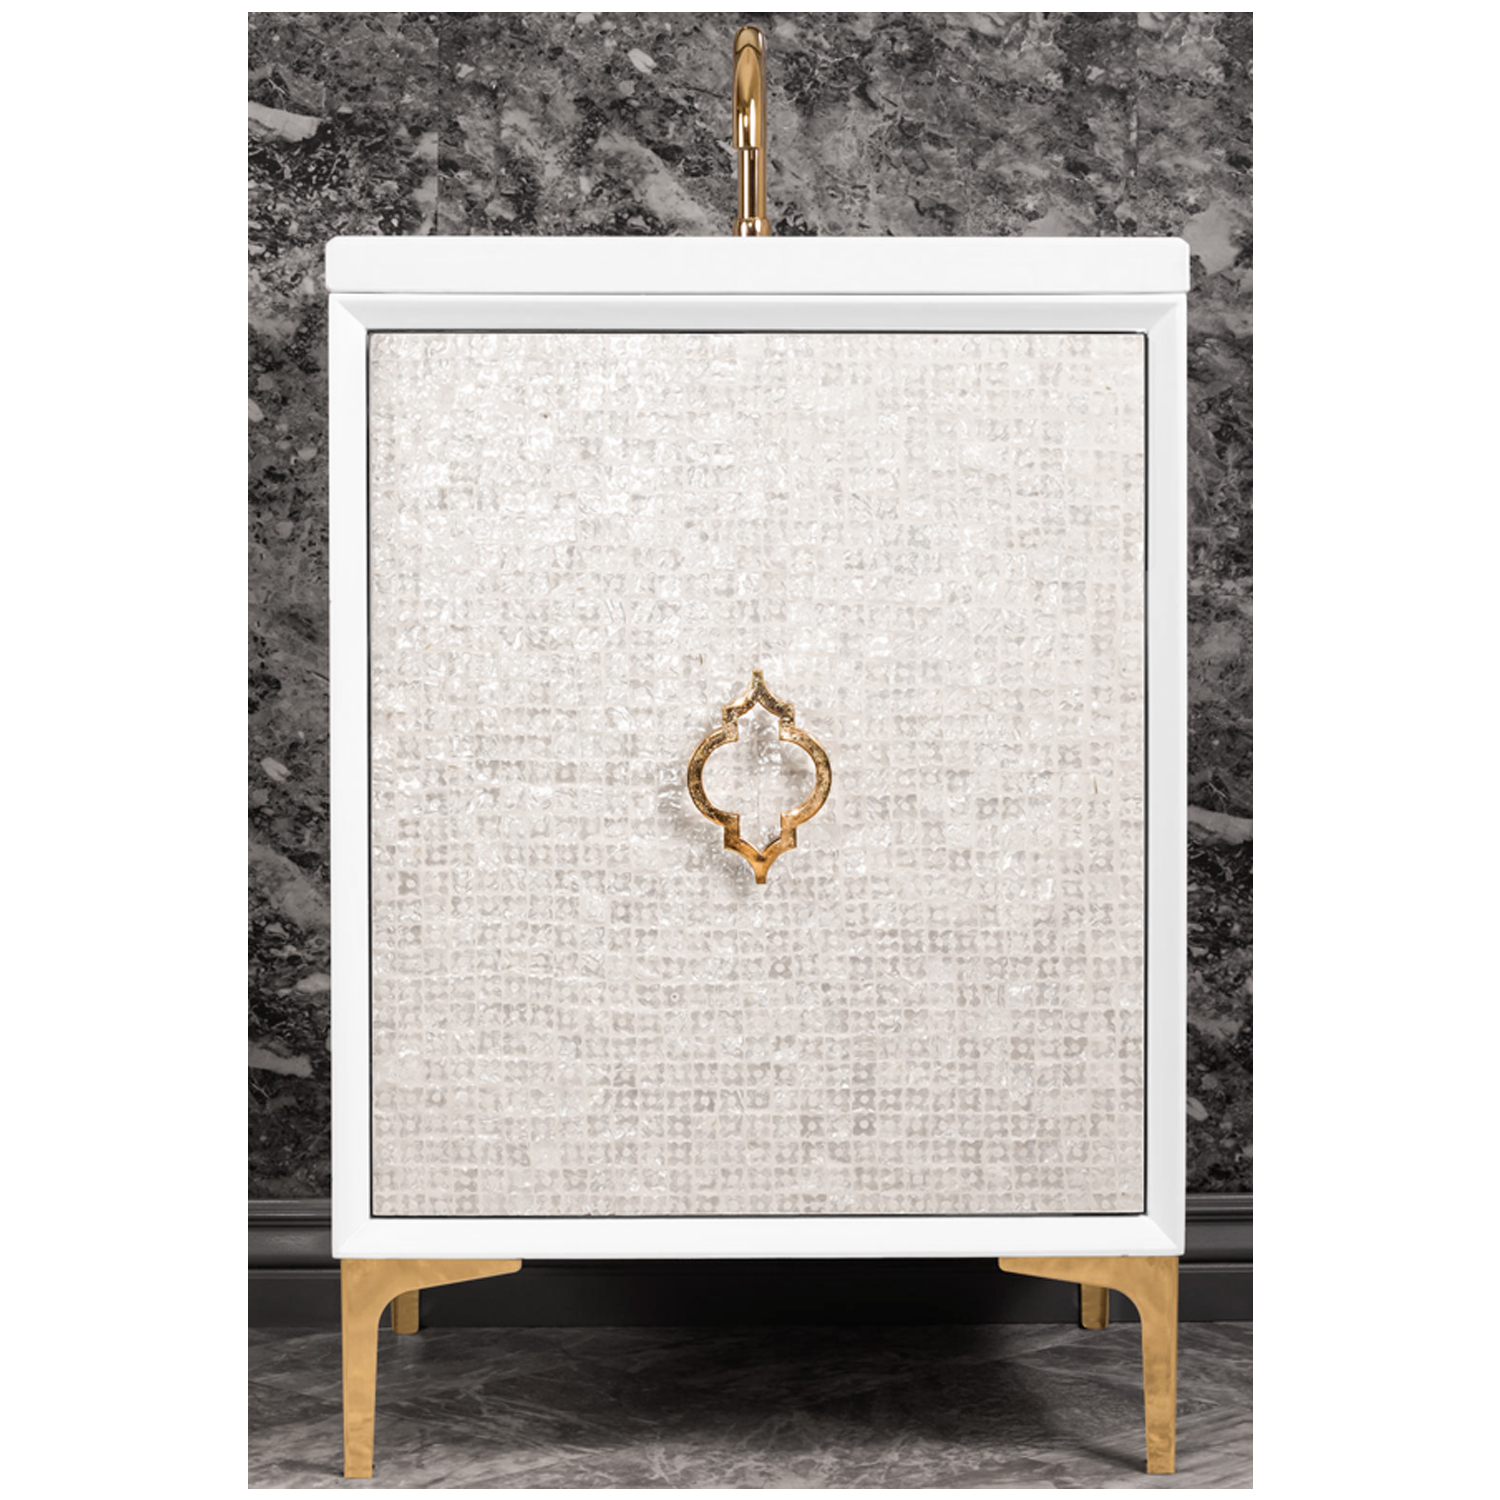 """VAN24W-004   24"""" White Mother of Pearl with Arabesque - Shown with PB (Polished Brass Finish)"""